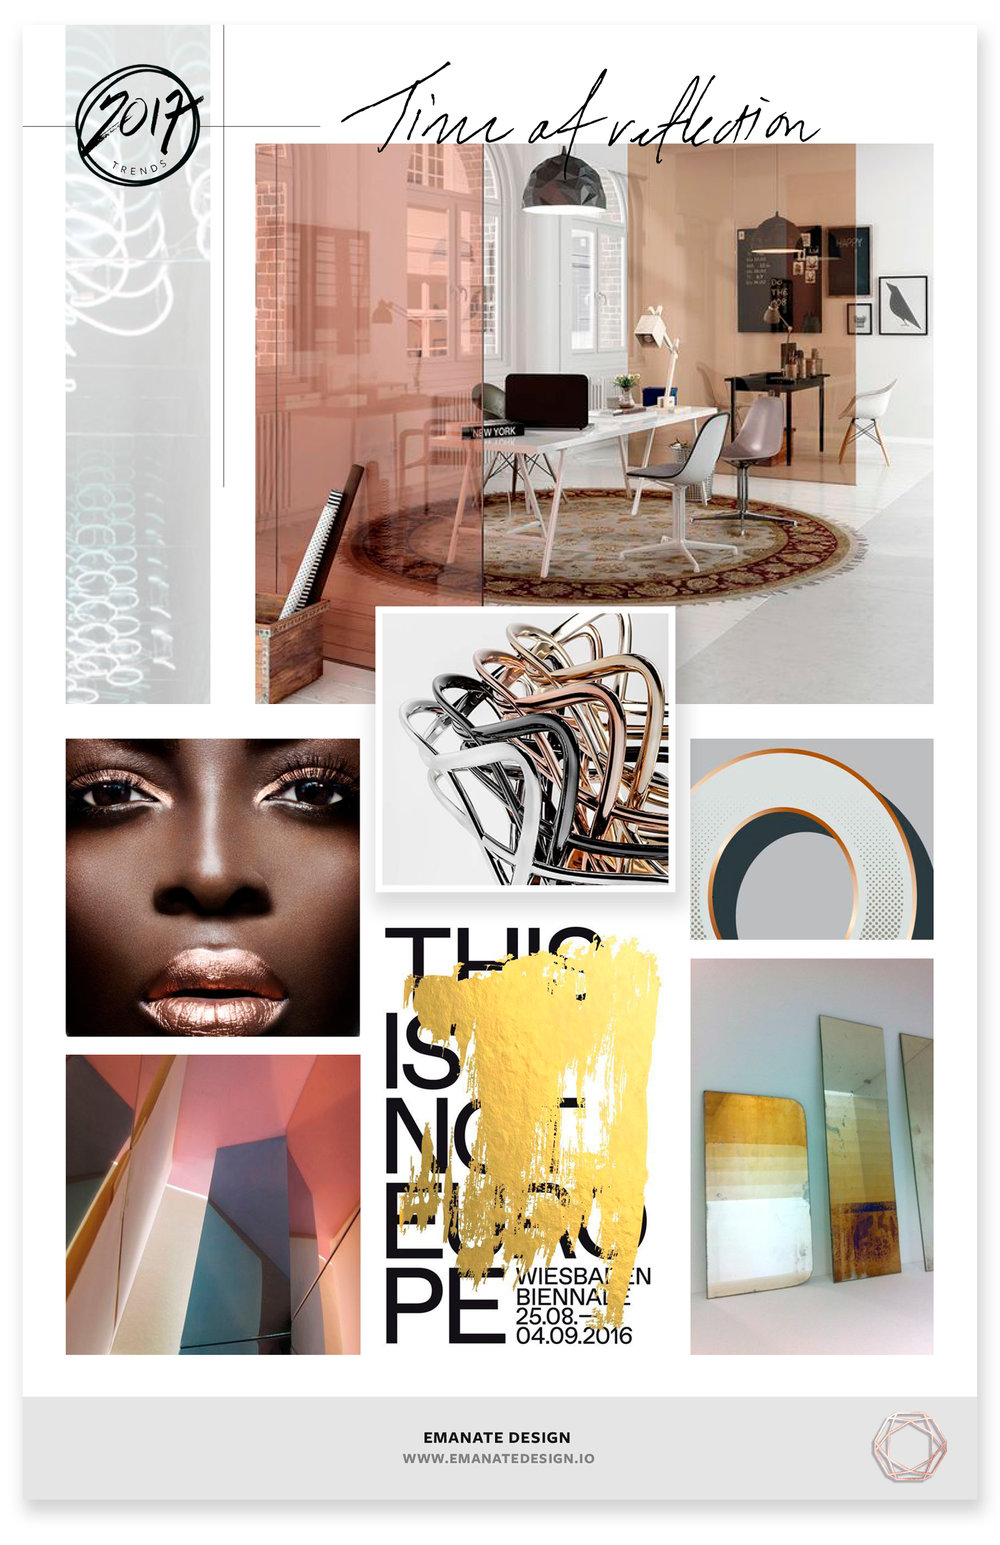 2017 Trends / Time of Reflection / Emanate Design  Clockwise from Left:  Neon - Brigitte Kowanz ,  Office ,  Chairs ,  Typeface ,  Mirror ,  Poster ,  Andrea Tognon - Interior,   Makeup